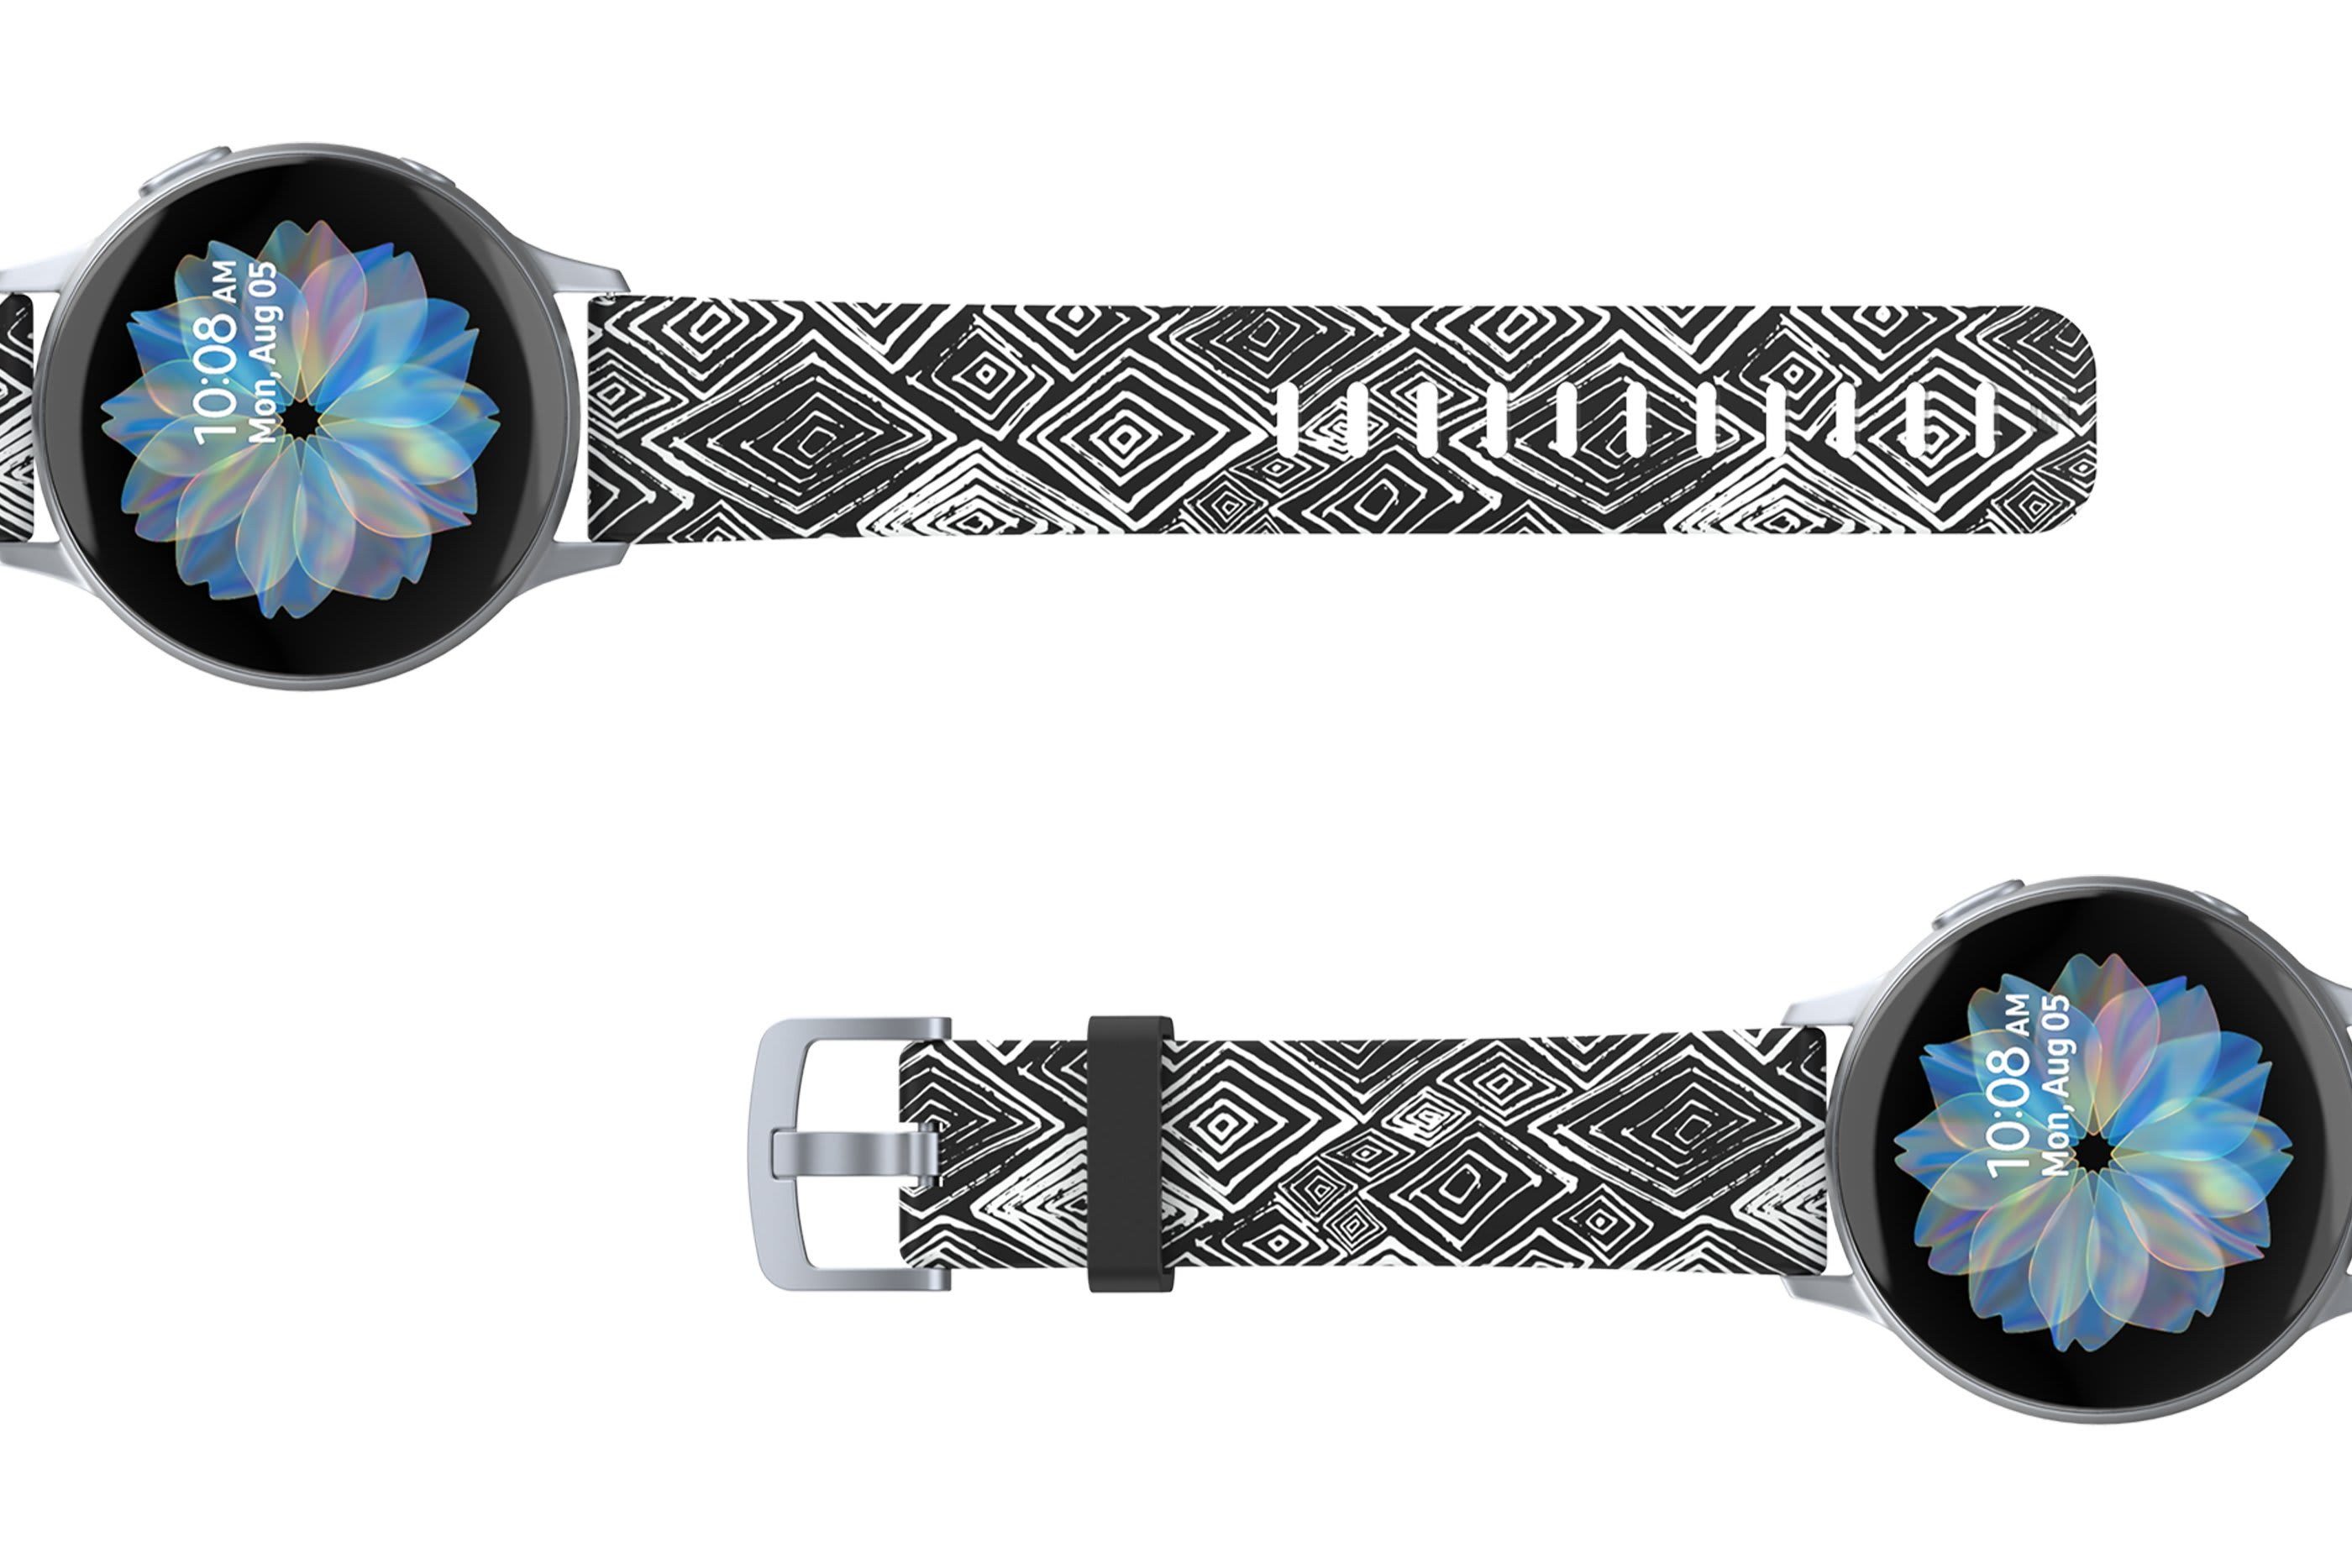 Folklore - Samsung 22mm watch band with silver hardware viewed top down